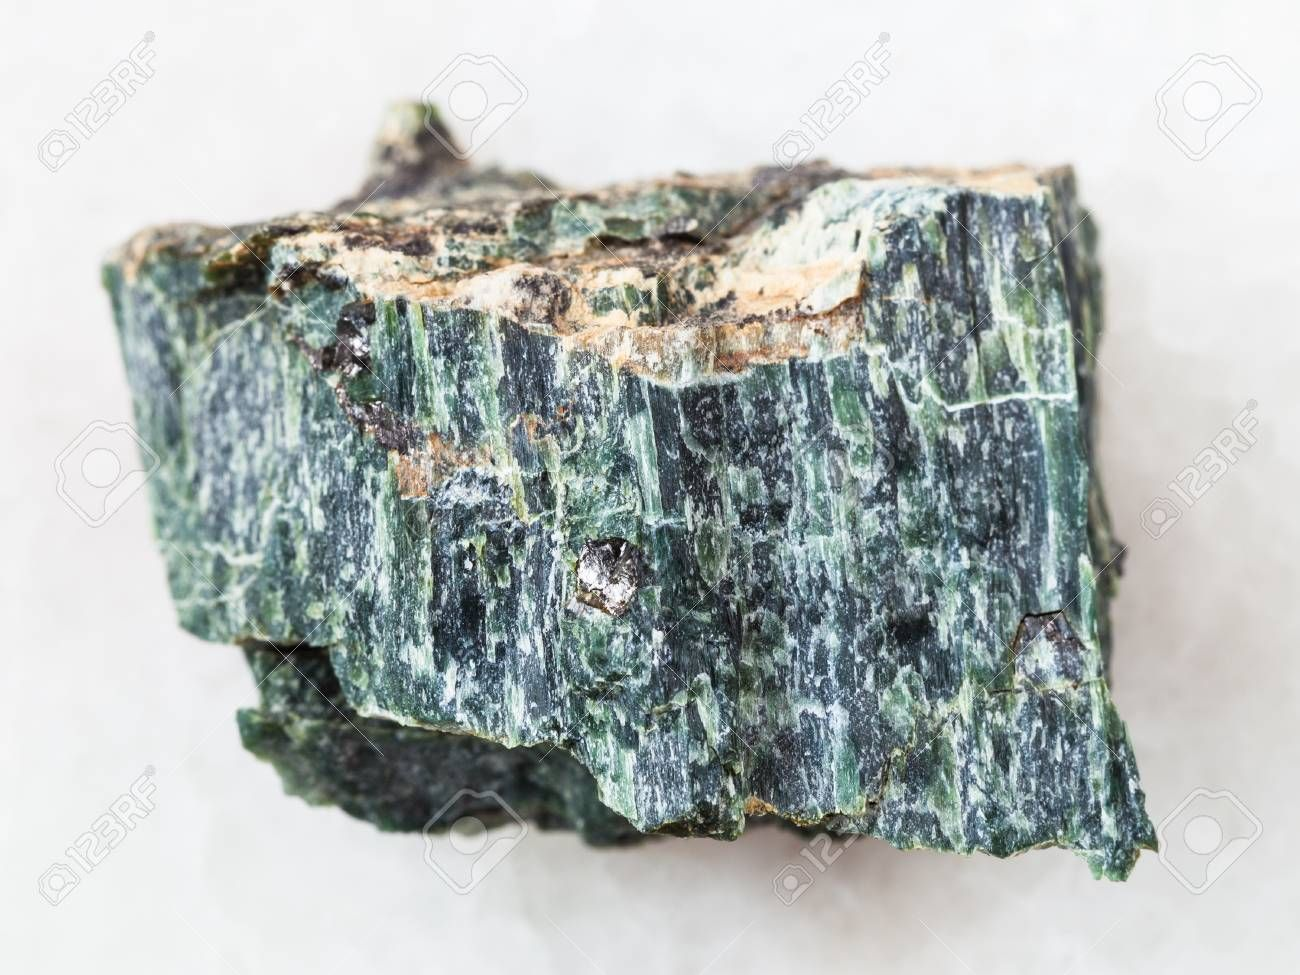 Macro Shooting Of Natural Mineral Rock Specimen Rough Chrysotile Rocks And Minerals Natural Minerals Minerals